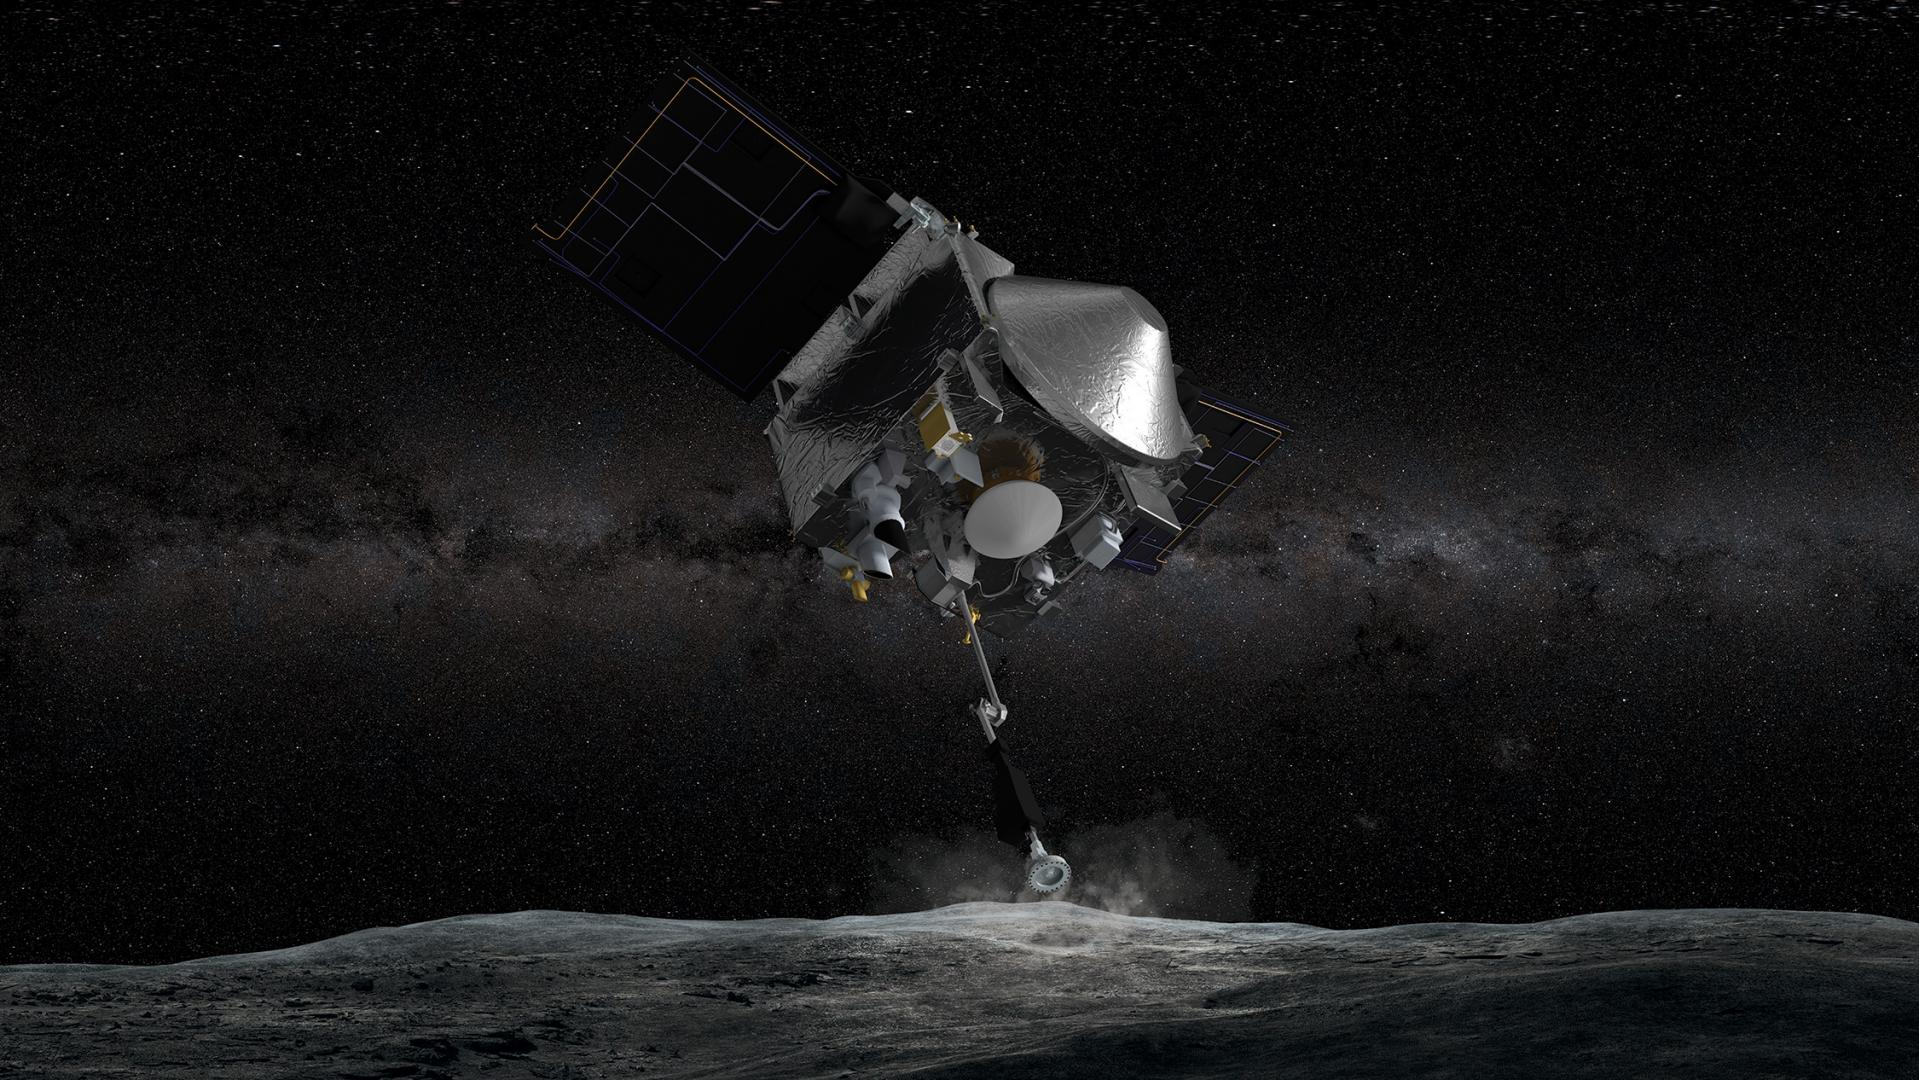 Next year, the OSIRIS-REx spacecraft will use its Touch-And-Go Sample Acquisition Mechanism to touch the surface of an asteroid for five seconds, collecting up to 4.4 pounds of rocks and dust. The first-of-its-kind NASA mission is led by the UA, where undergraduate and graduate students are working alongside faculty and staff to make significant scientific contributions.